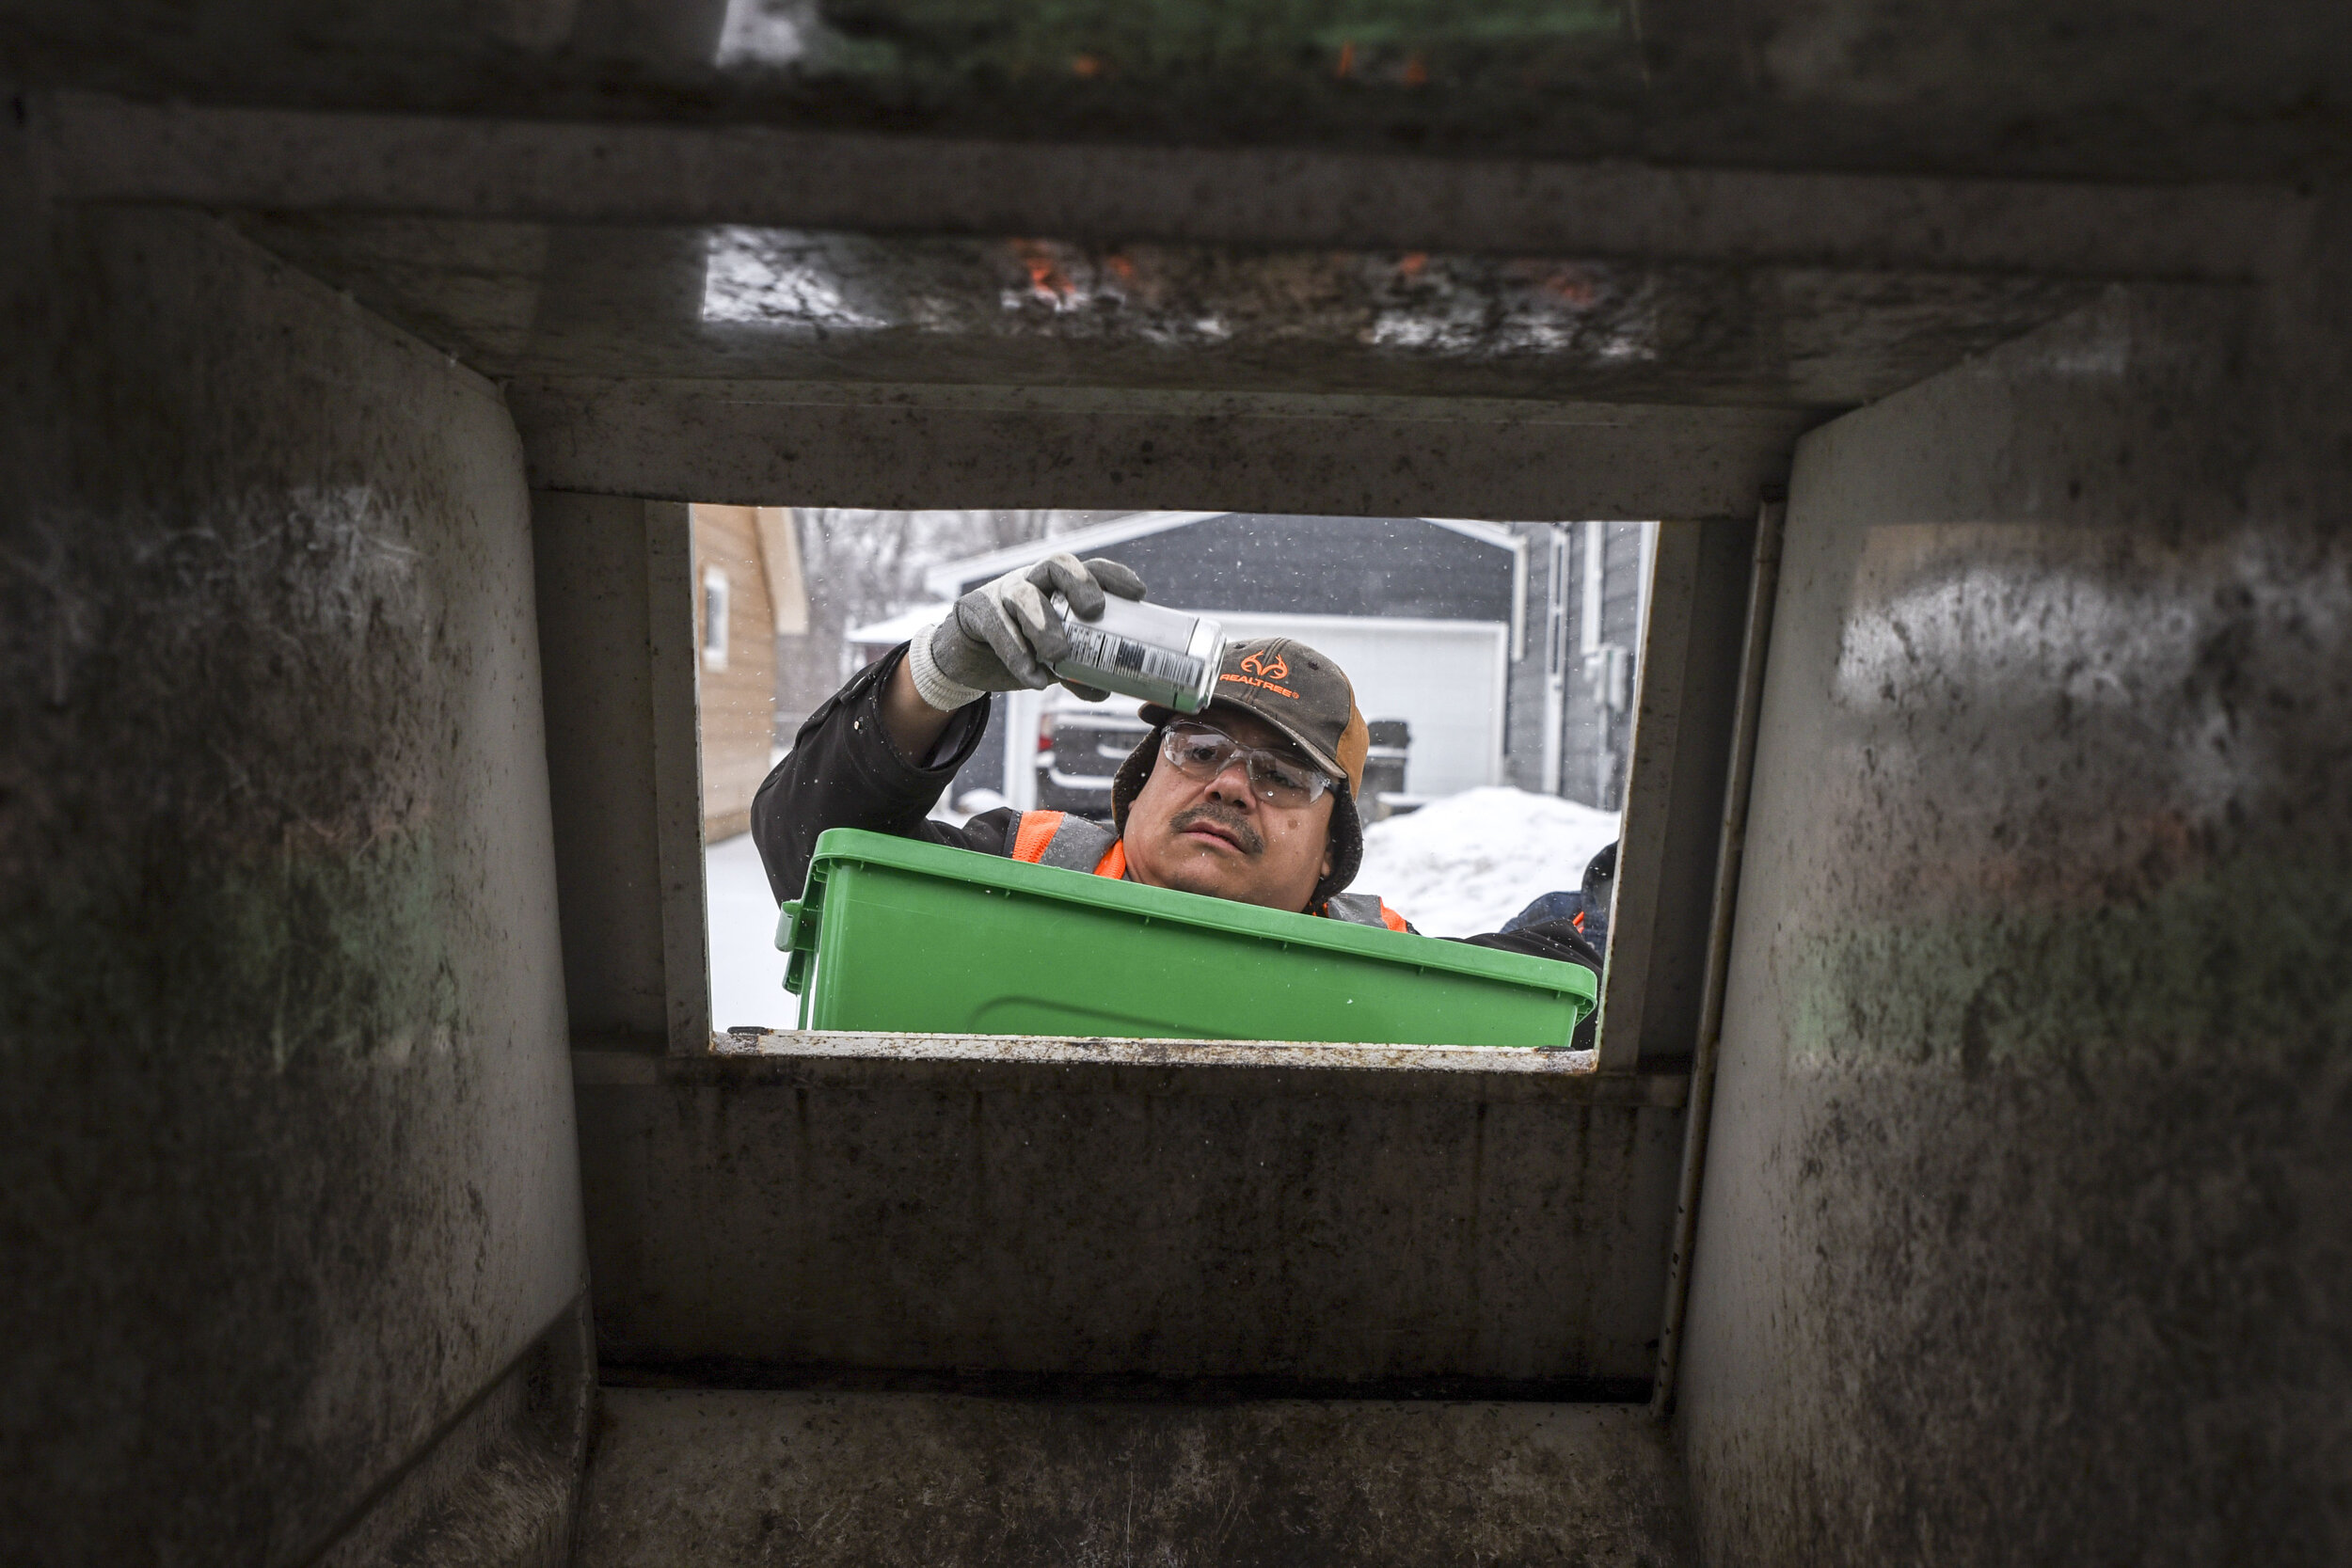 Elijah Gomez puts a can in the recycling pickup truck during his volunteer hours Mar. 20 in Willmar.